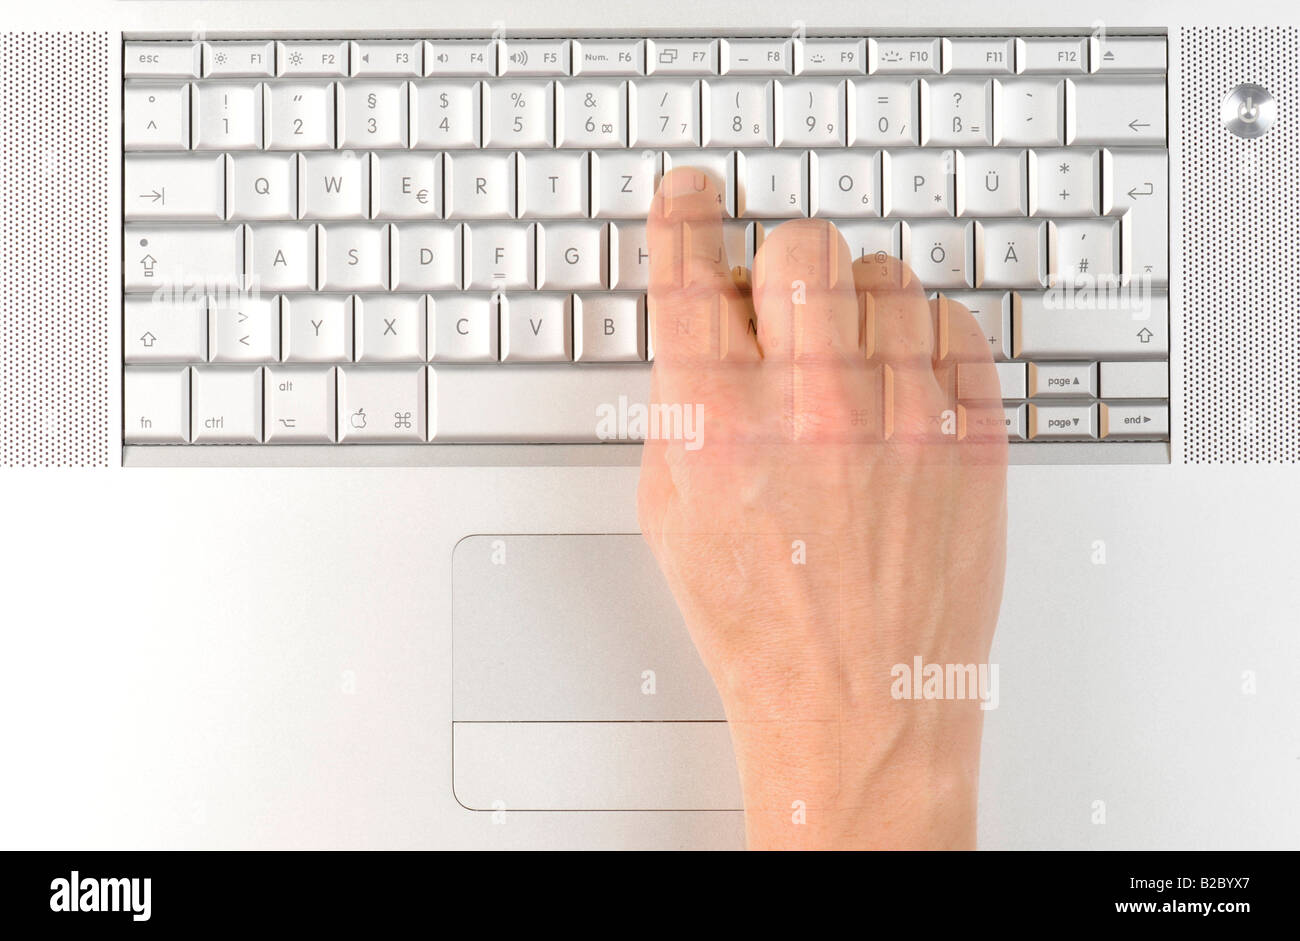 Apple macbook pro keyboard hand typing stock photo 18703055 alamy apple macbook pro keyboard hand typing biocorpaavc Images